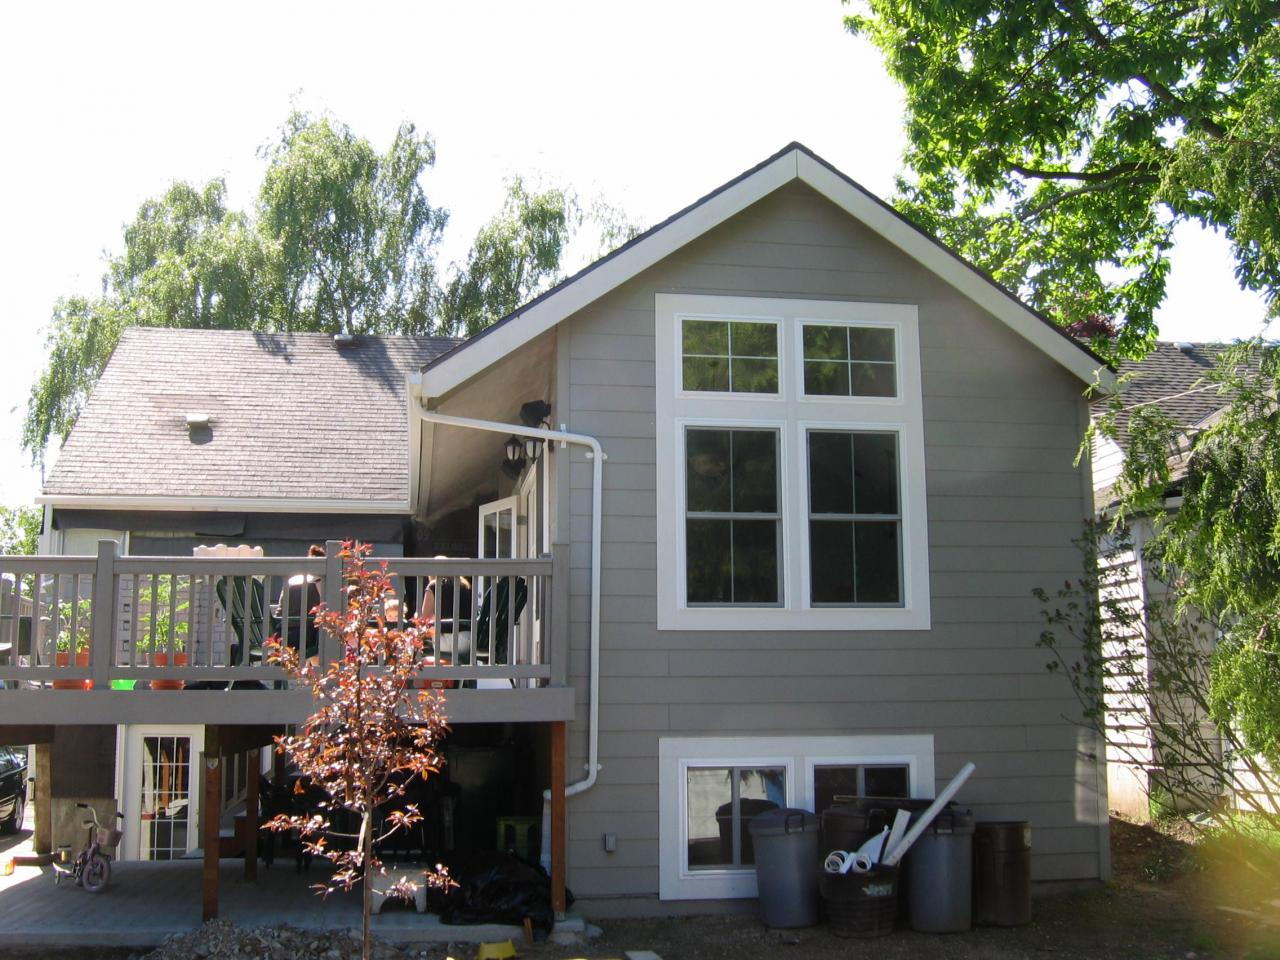 Eggers home construction remodeling llc additions for Remodeling additions